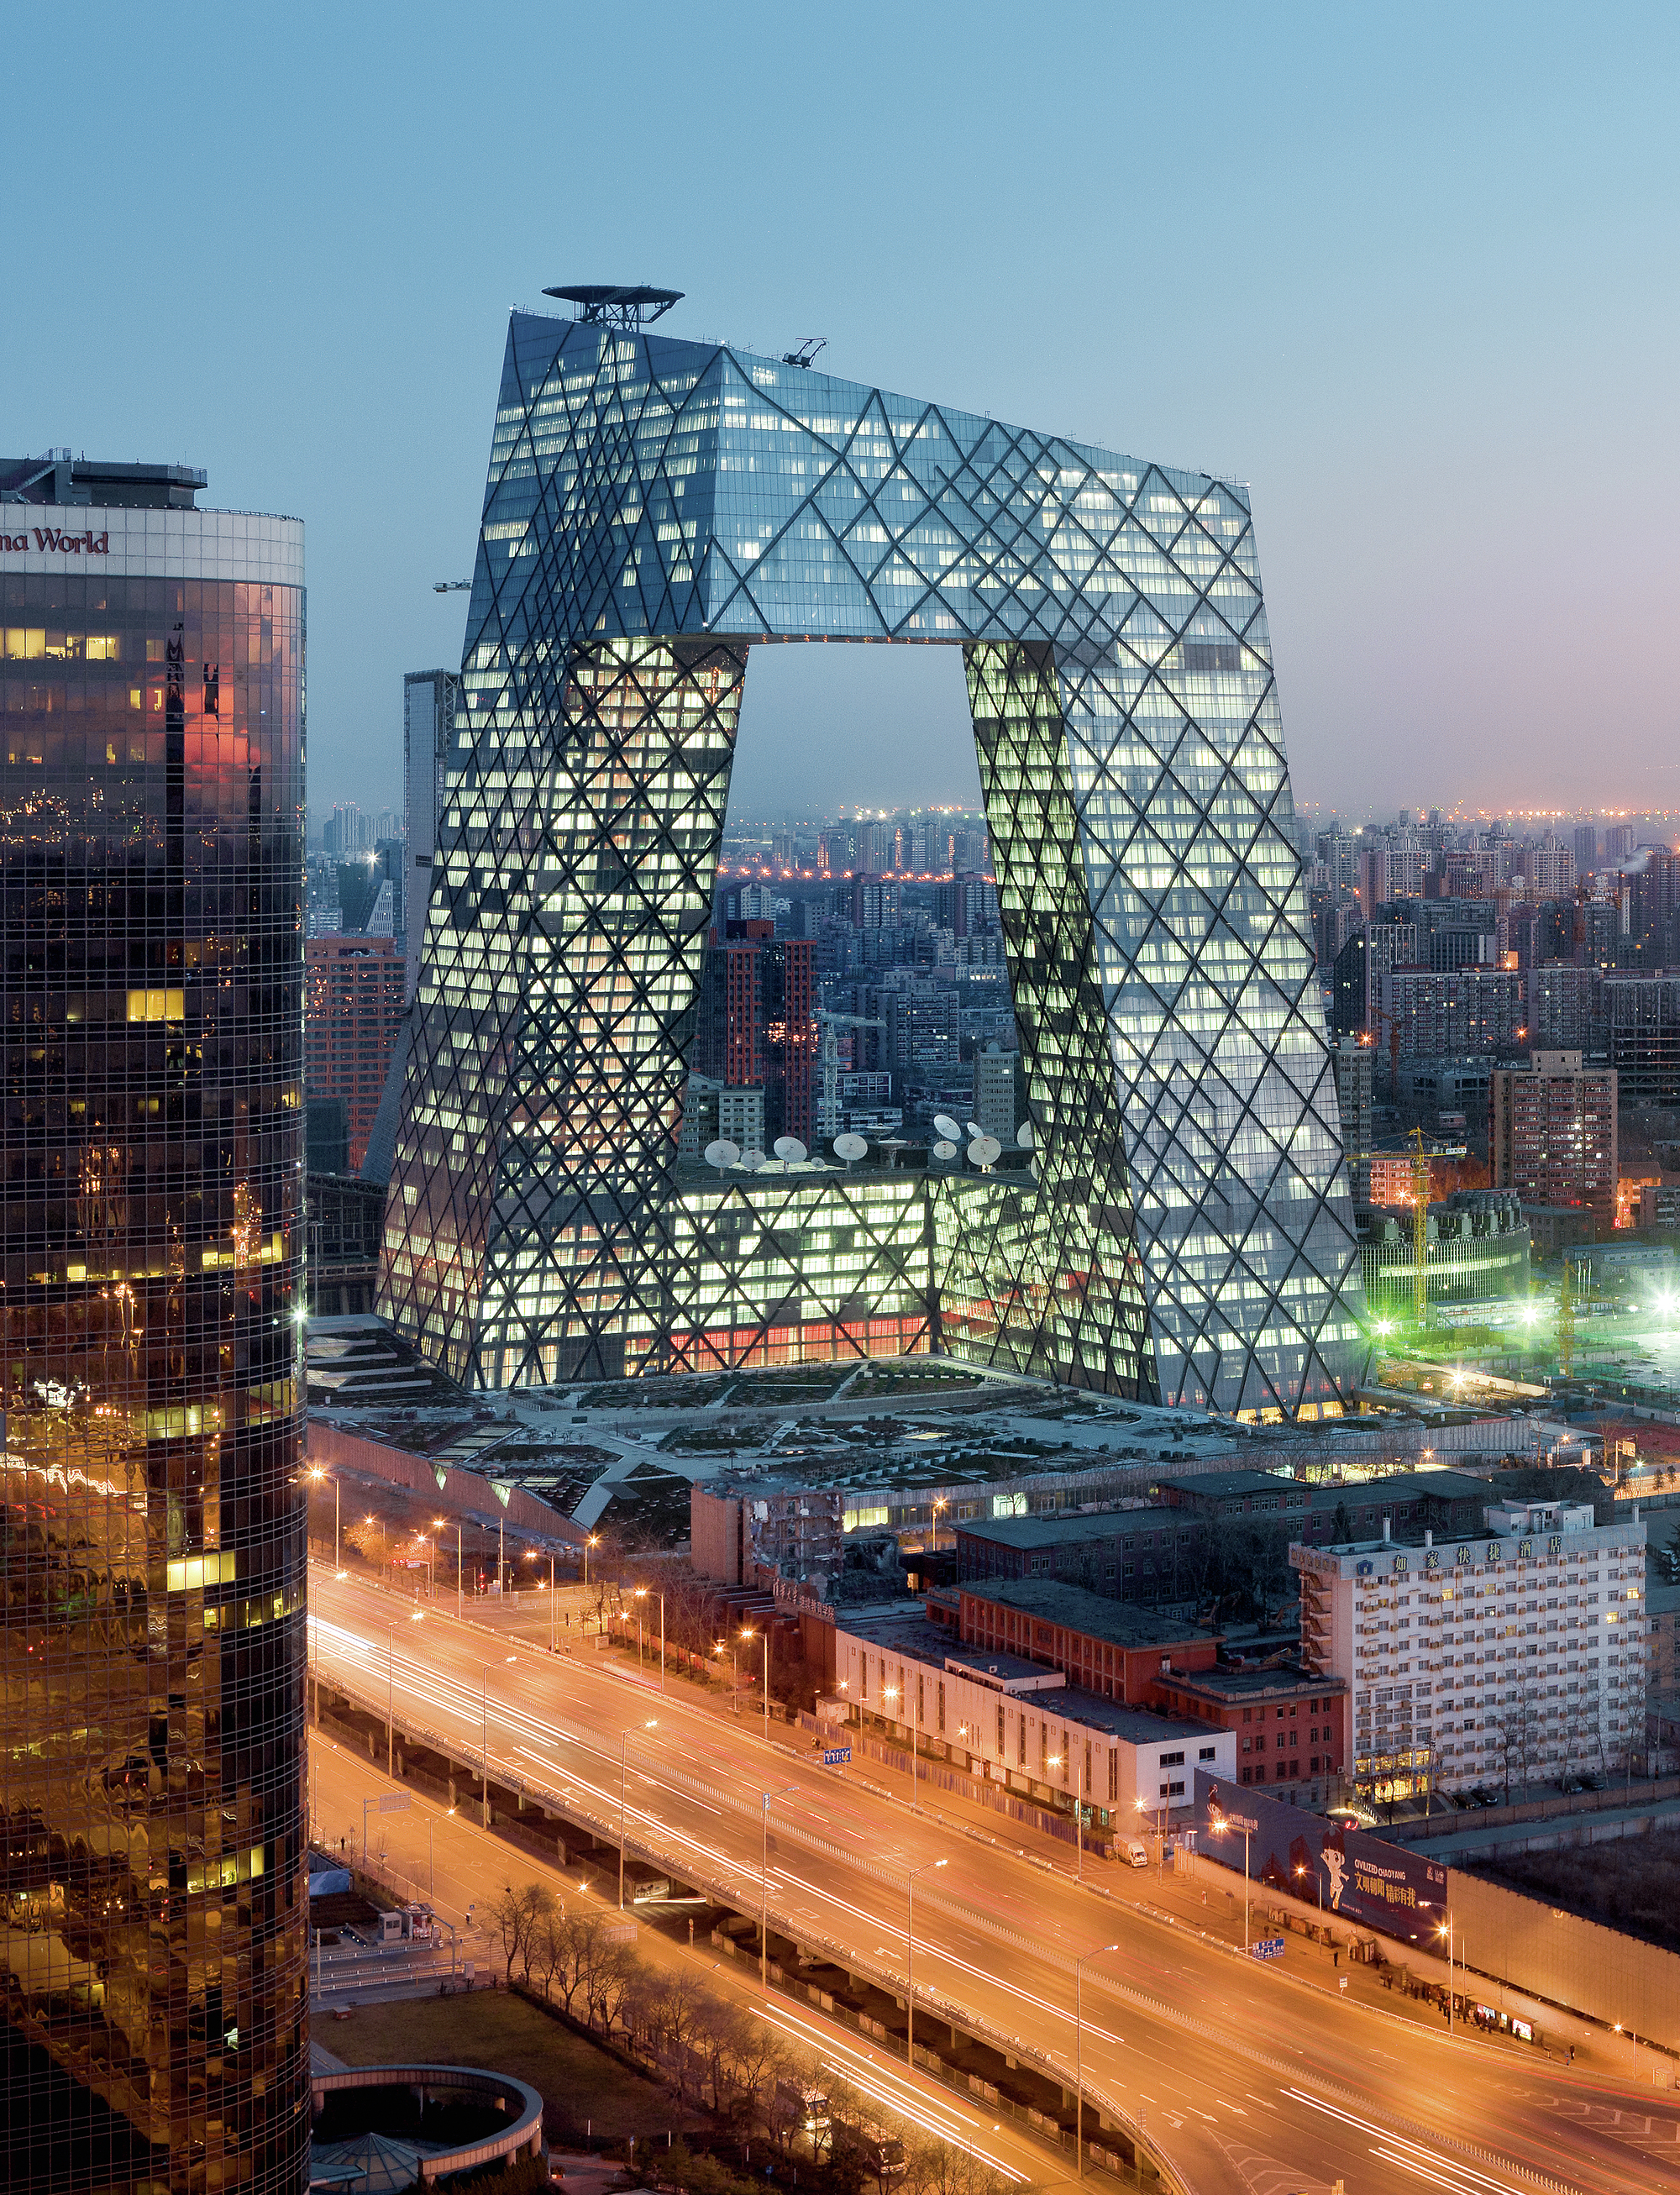 cctv television station and headquarters 2002 2012 beijing china iwan